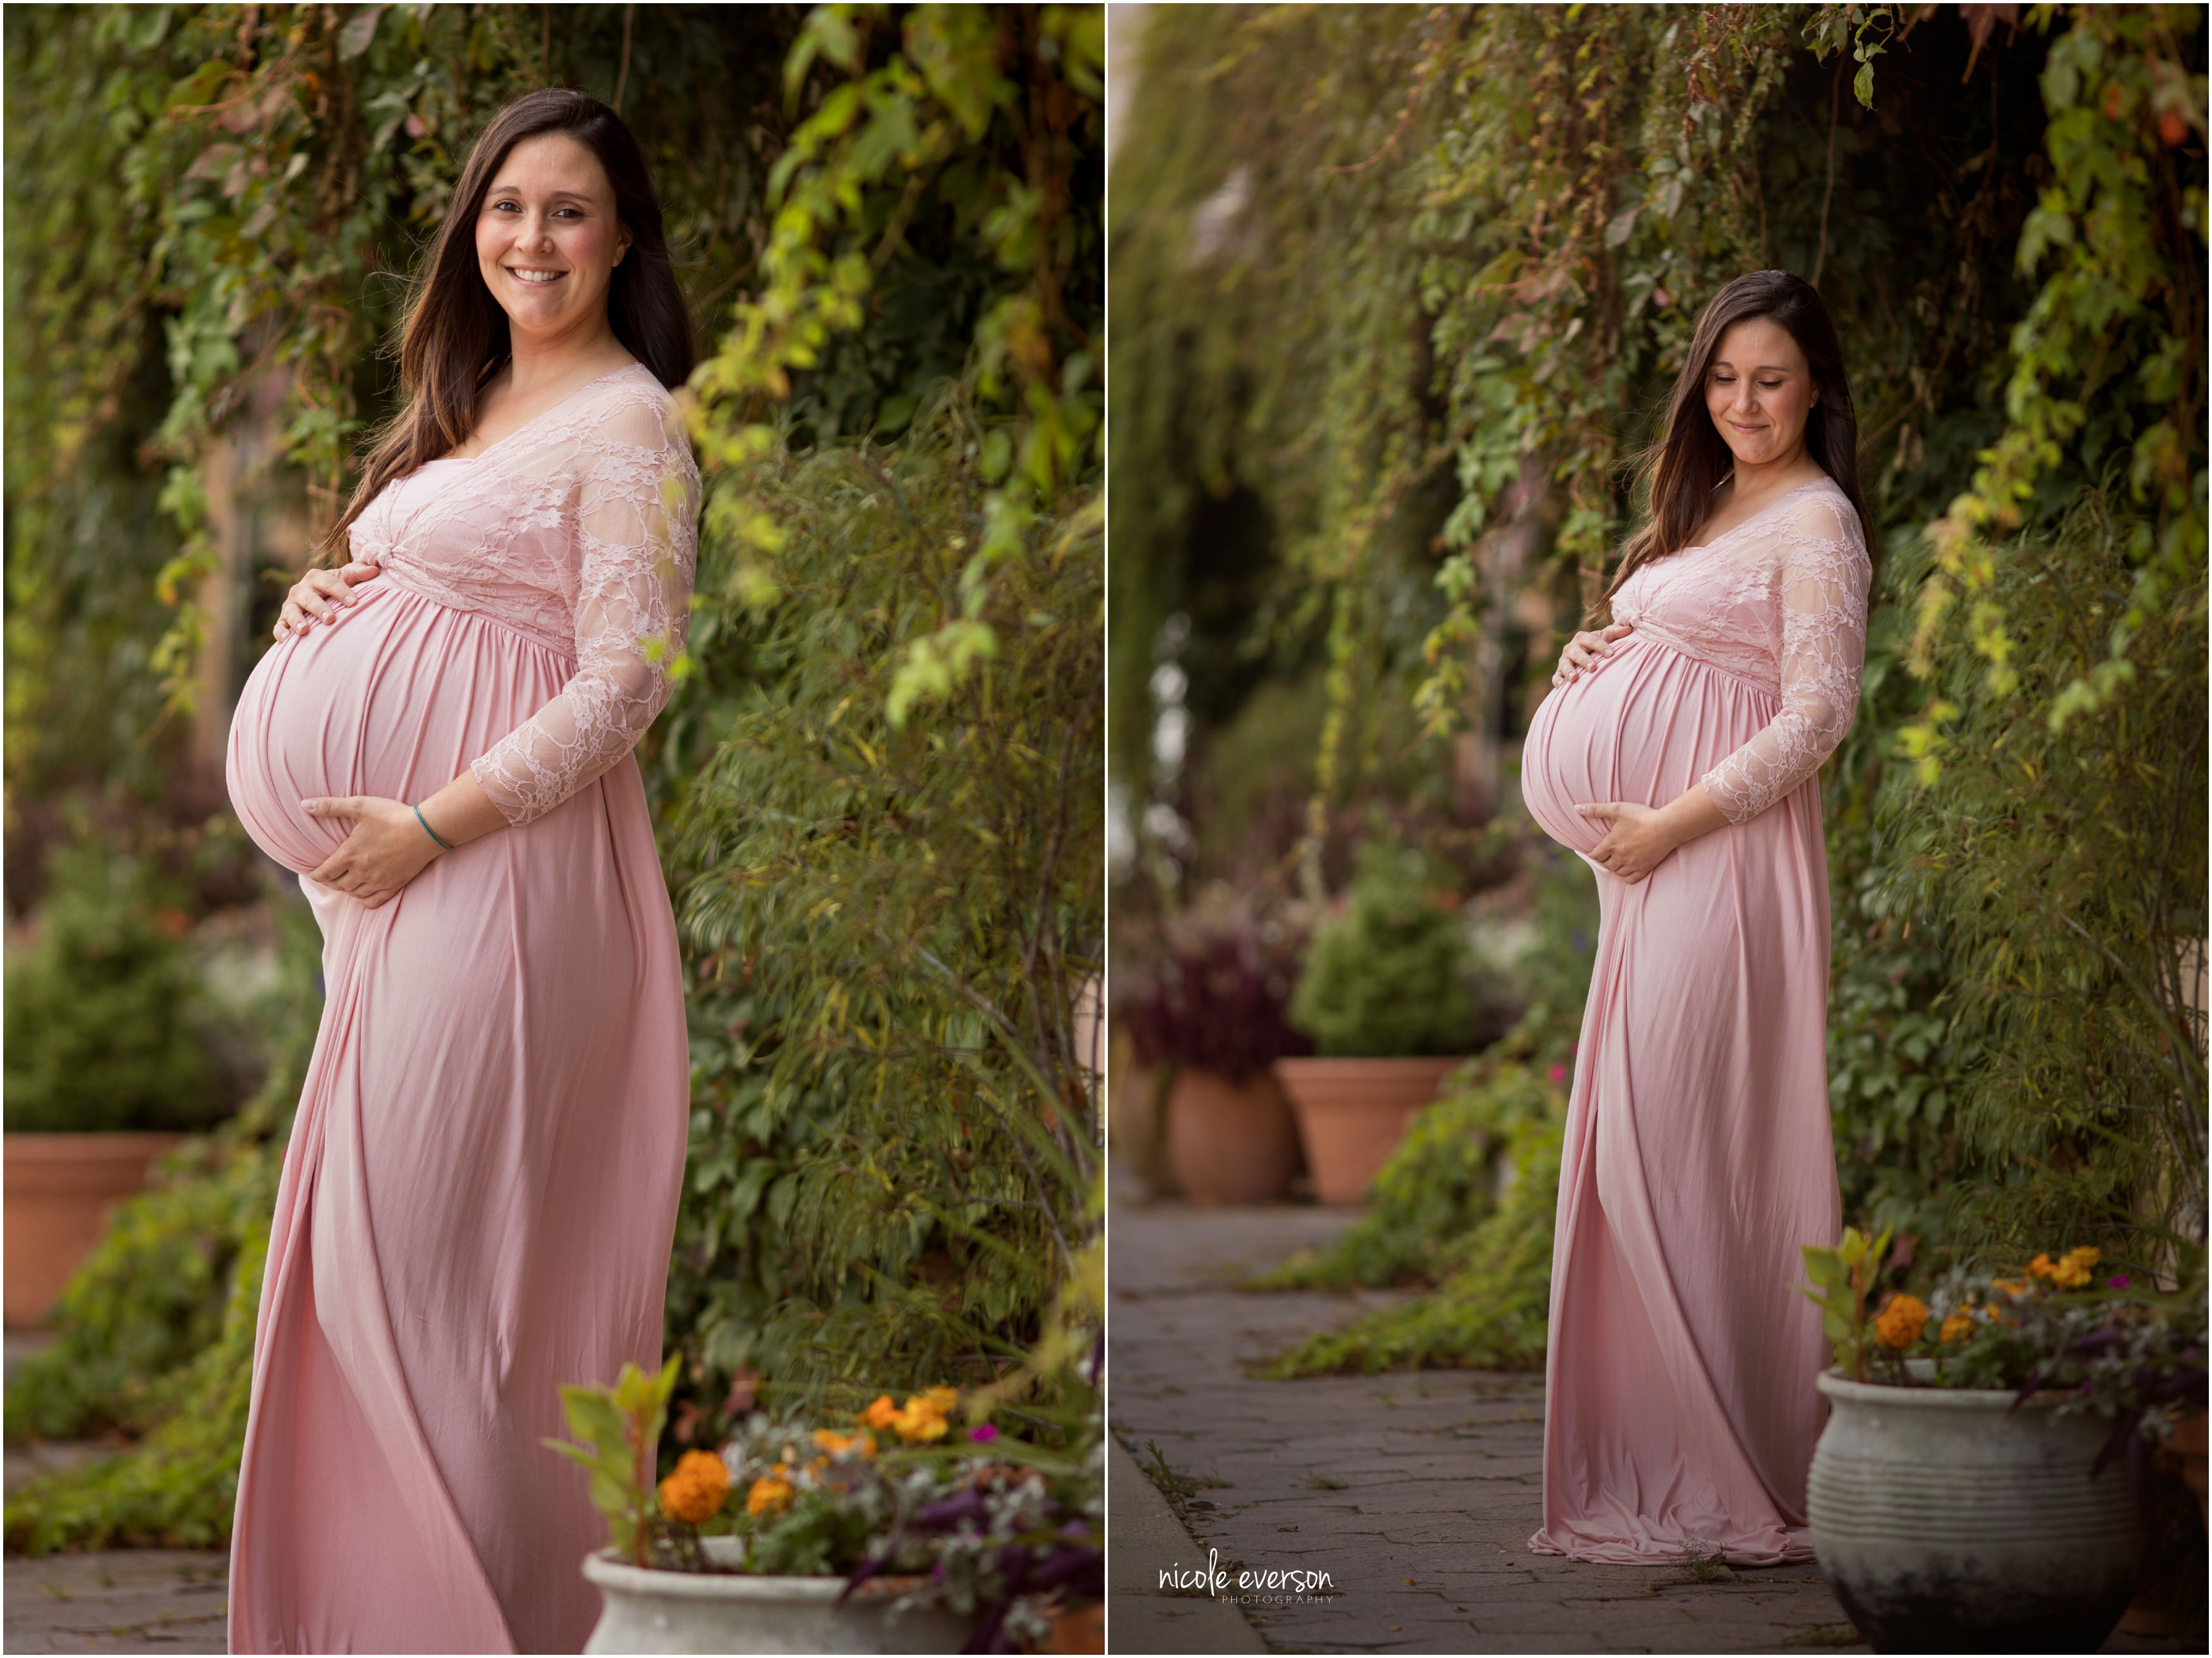 maternity photos downtown Tallahassee Florida wearing a pink maternity dress